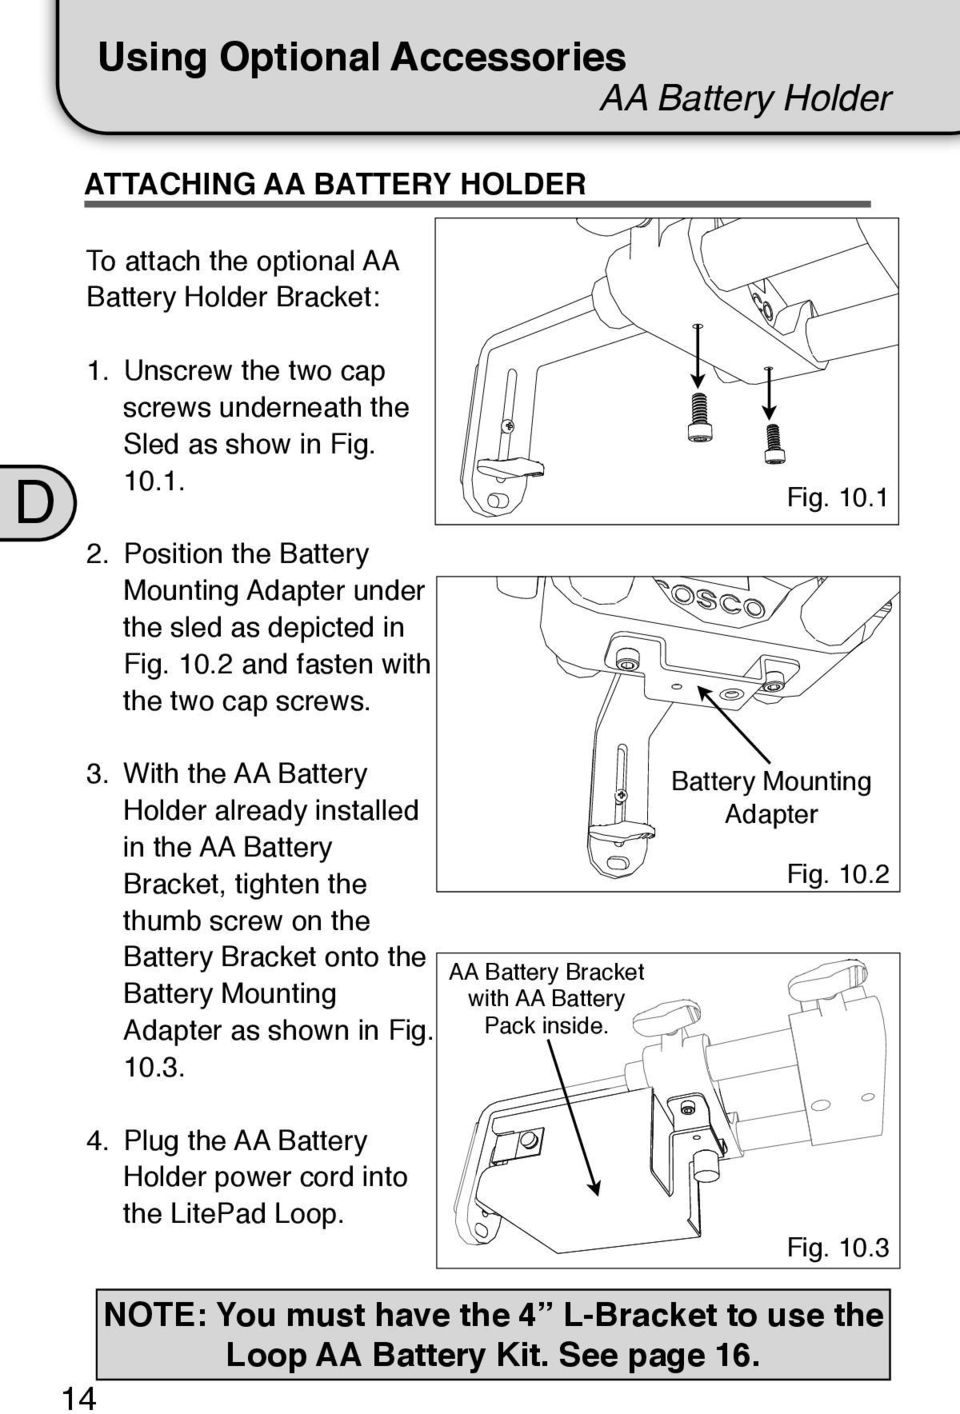 Fig. 10.1 3. With the AA Battery Holder already installed in the AA Battery Bracket, tighten the thumb screw on the Battery Bracket onto the Battery Mounting Adapter as shown in Fig. 10.3. 4.